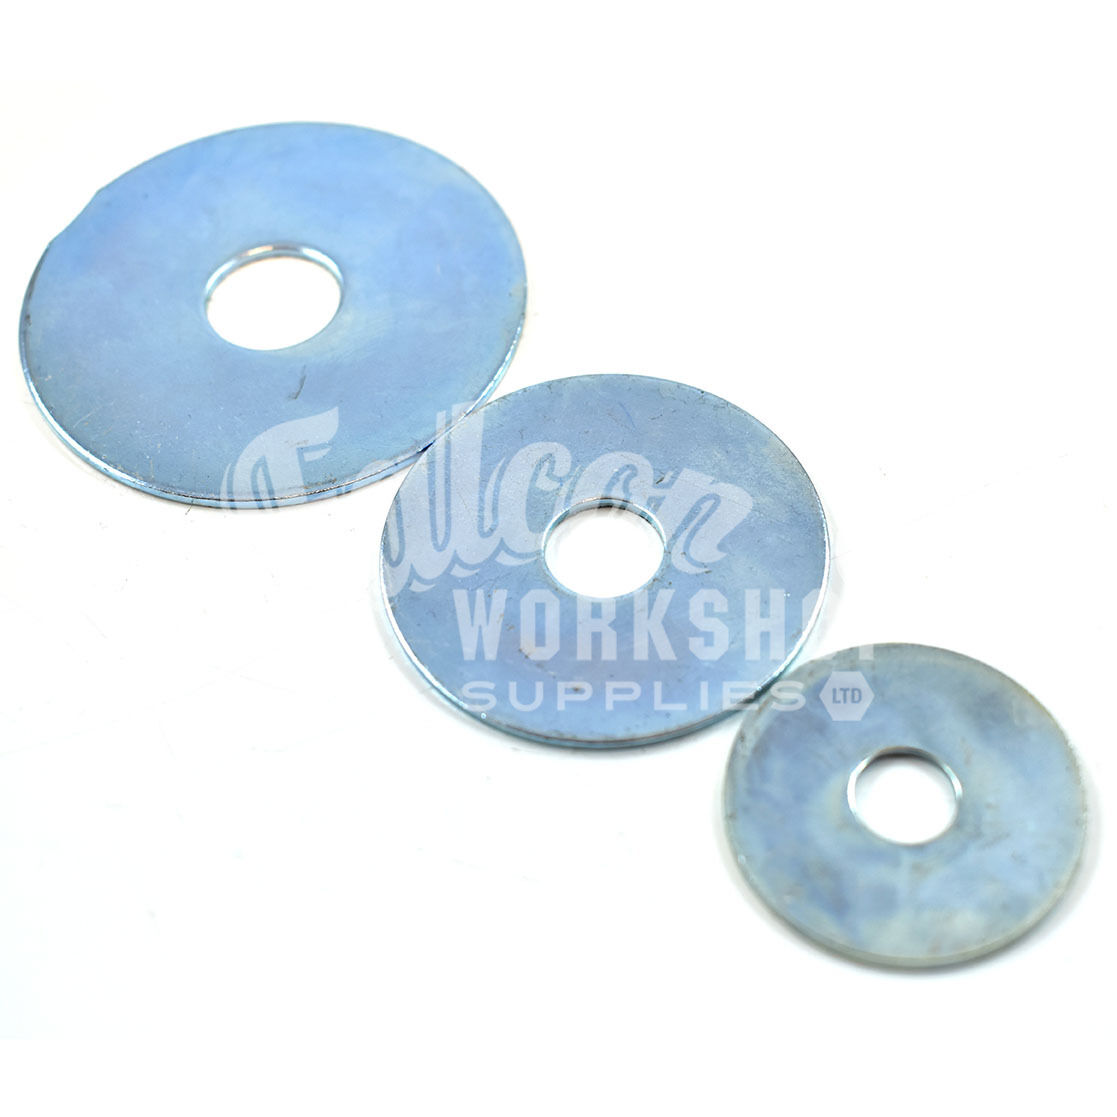 M10 MIX 6 OF EACH SIZE 20mm 50mm M5 STEEL REPAIR PENNY WASHERS MUDGUARD